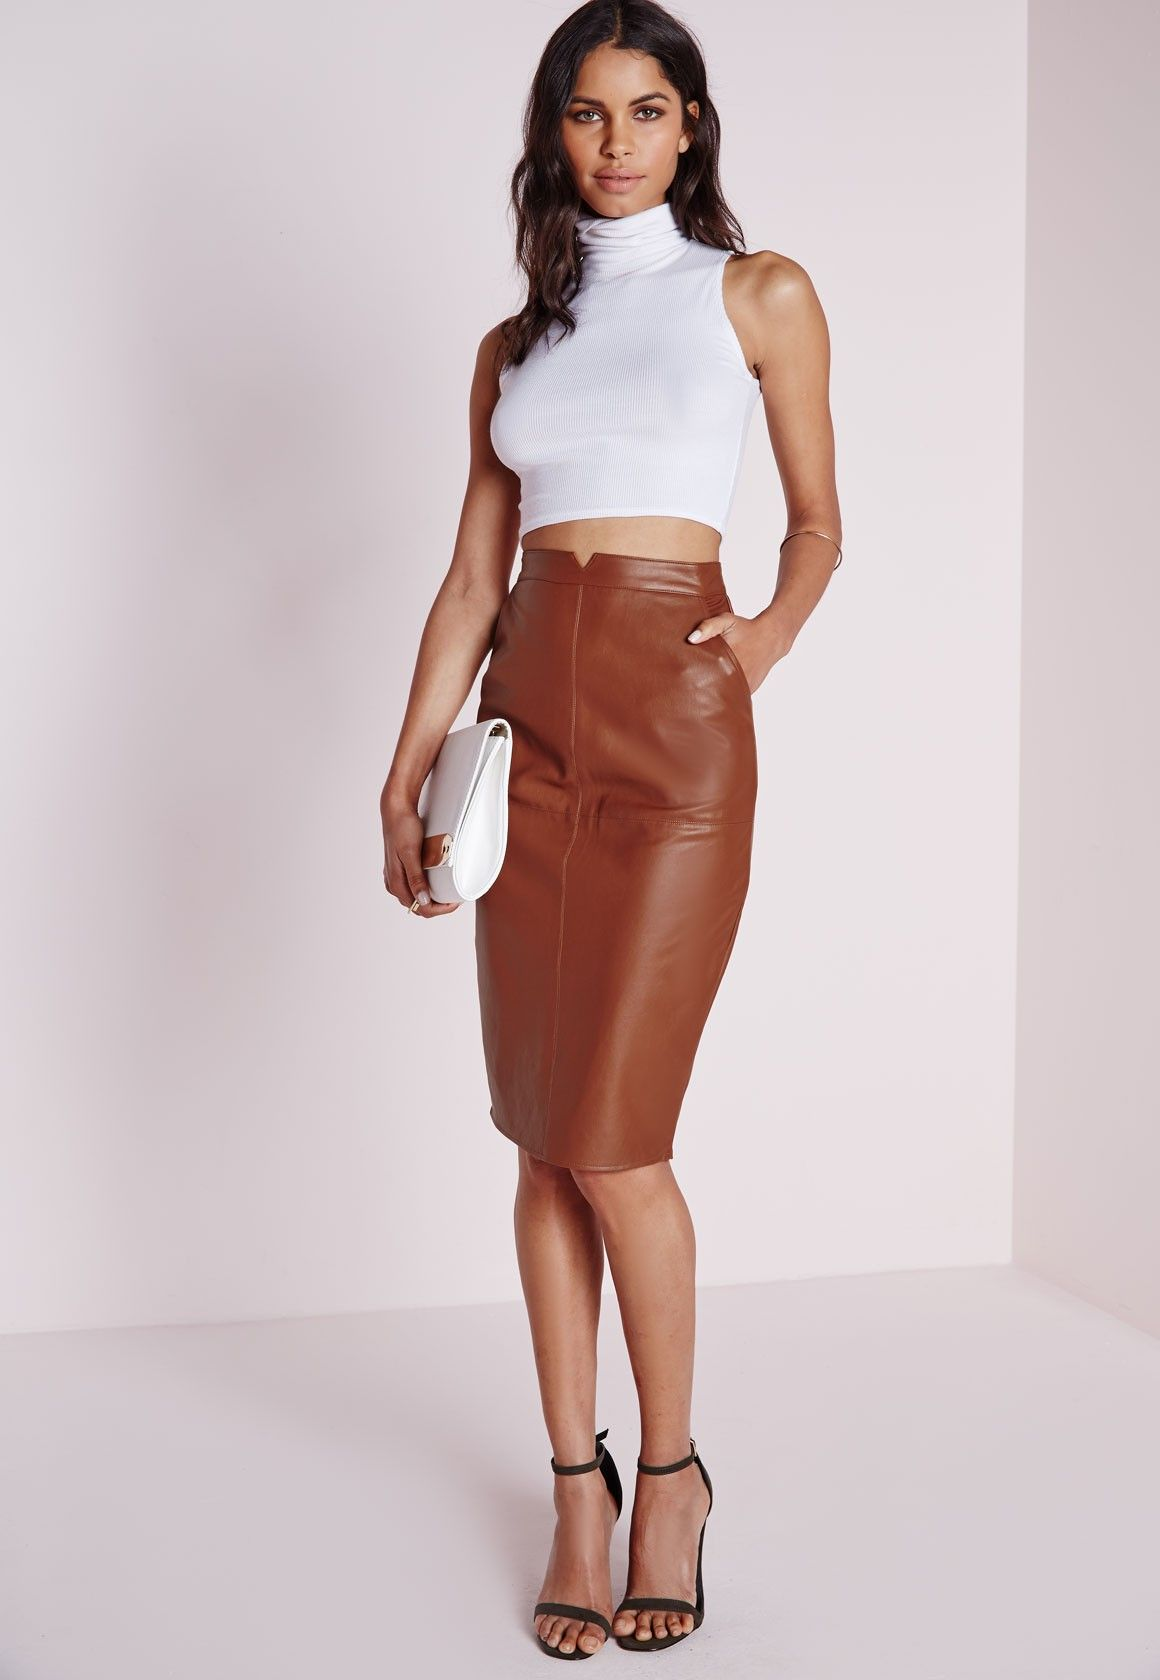 Missguided - Faux Leather Midi Skirt Tan | Wardrobe inspo ...